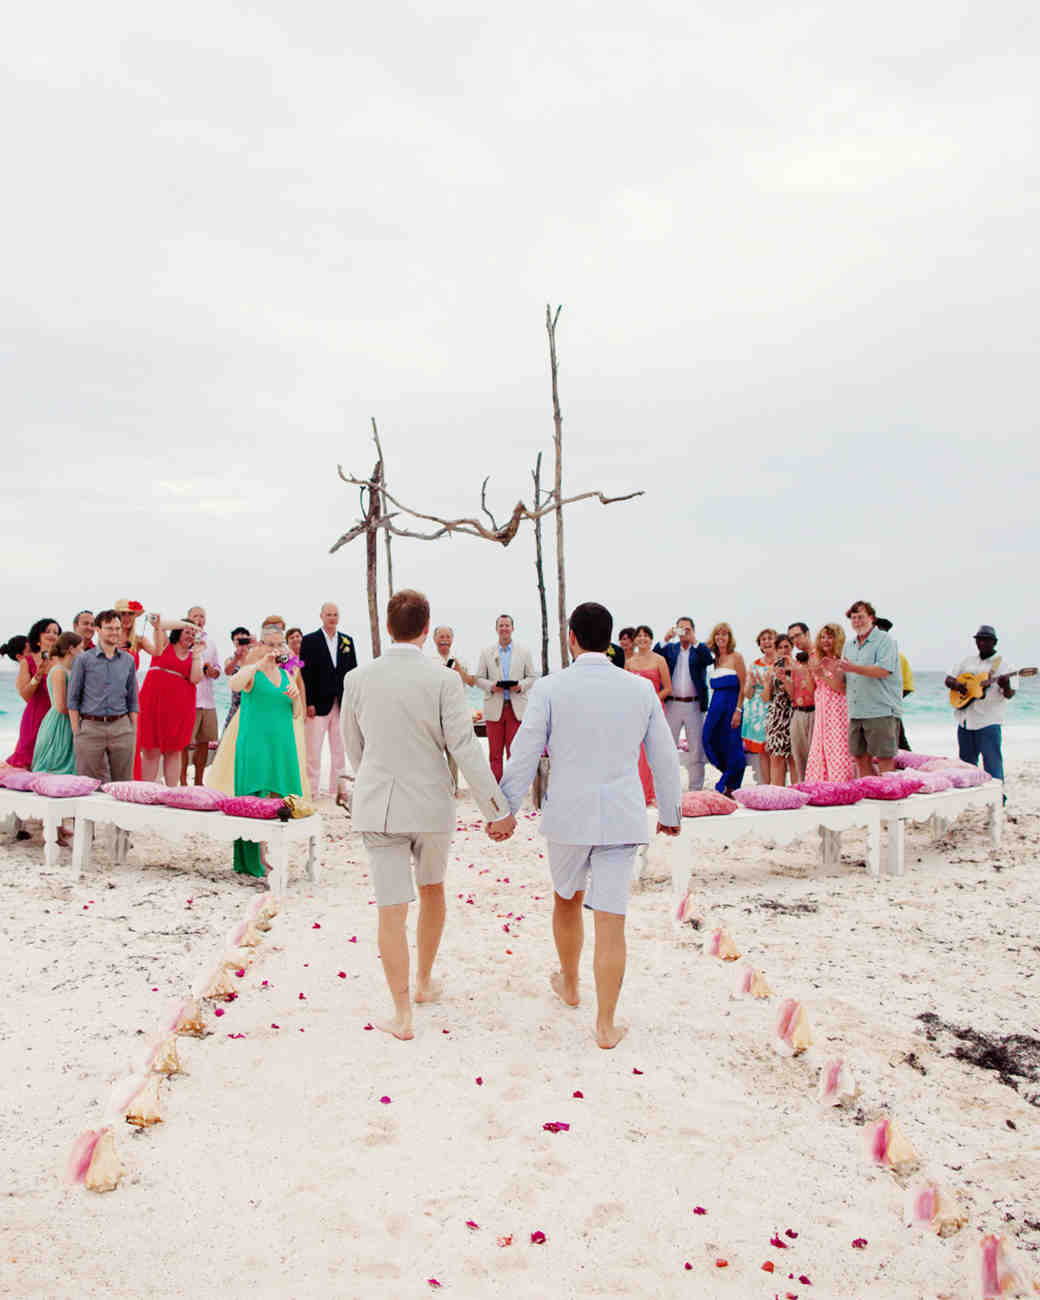 Beach Wedding Ceremony Processional: Your Same-Sex Wedding Etiquette Questions—Answered